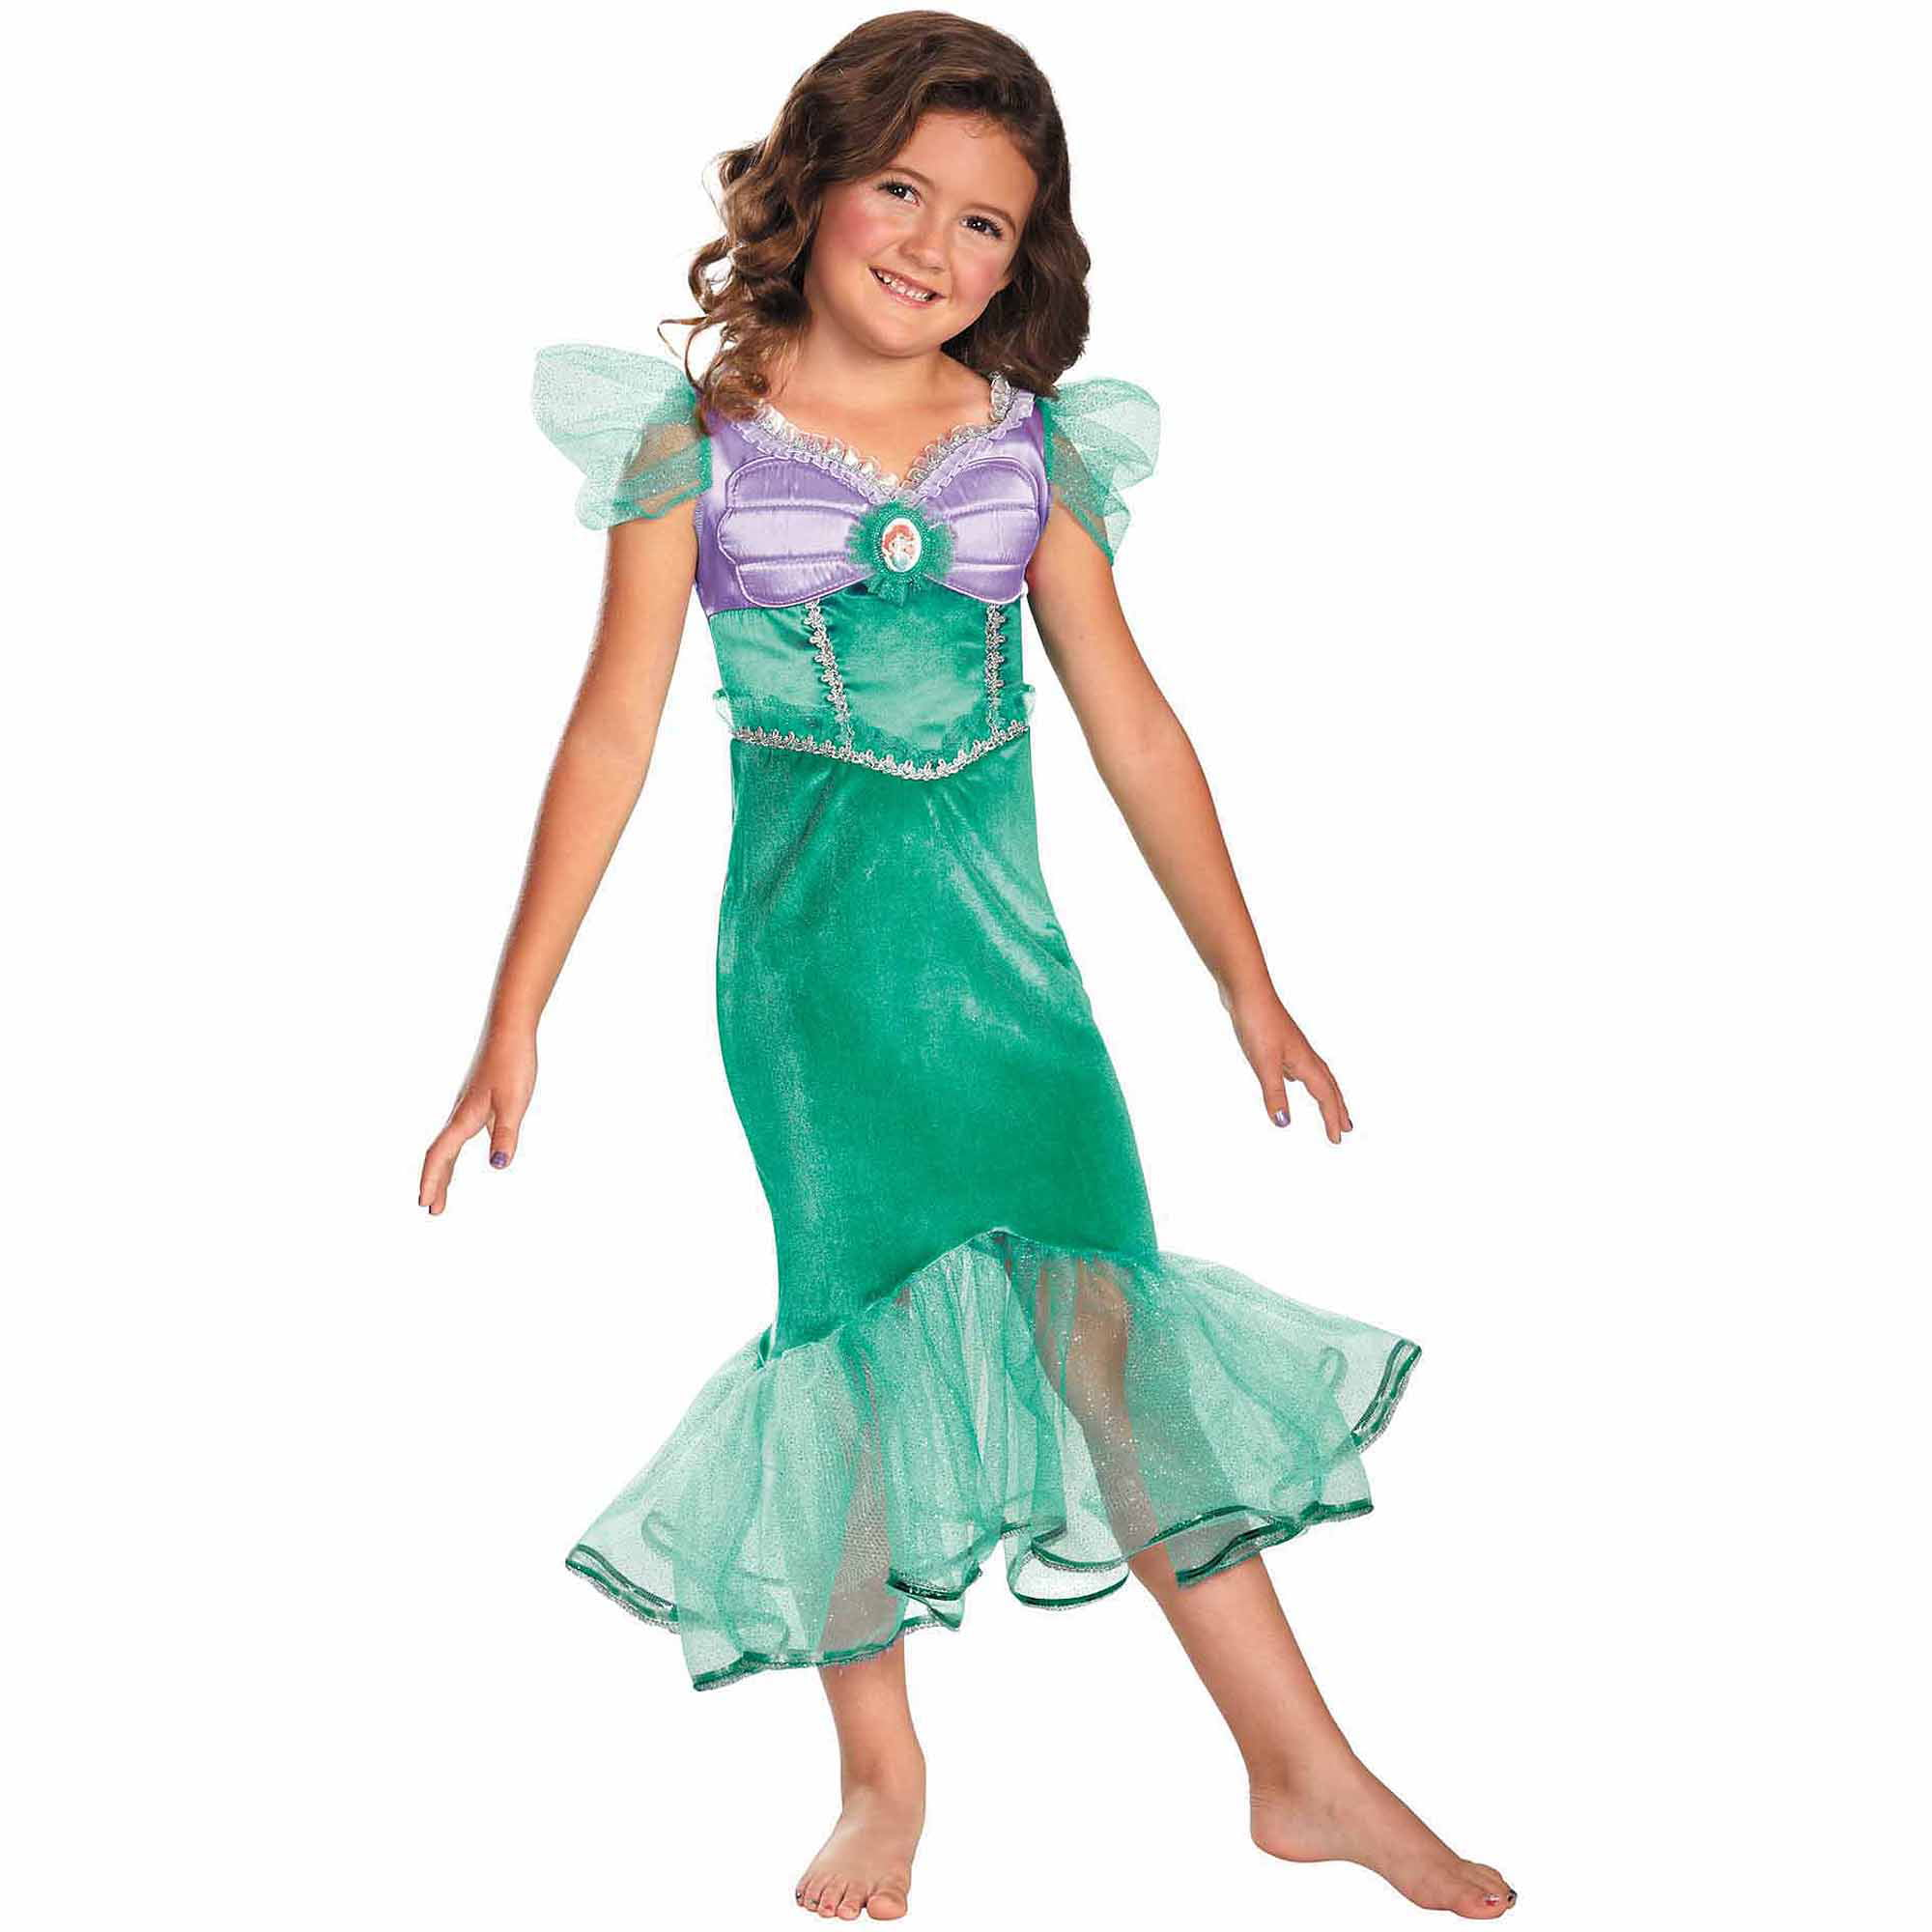 34e061914 Disney Princess Ariel Sparkle Classic Child Halloween Costume ...